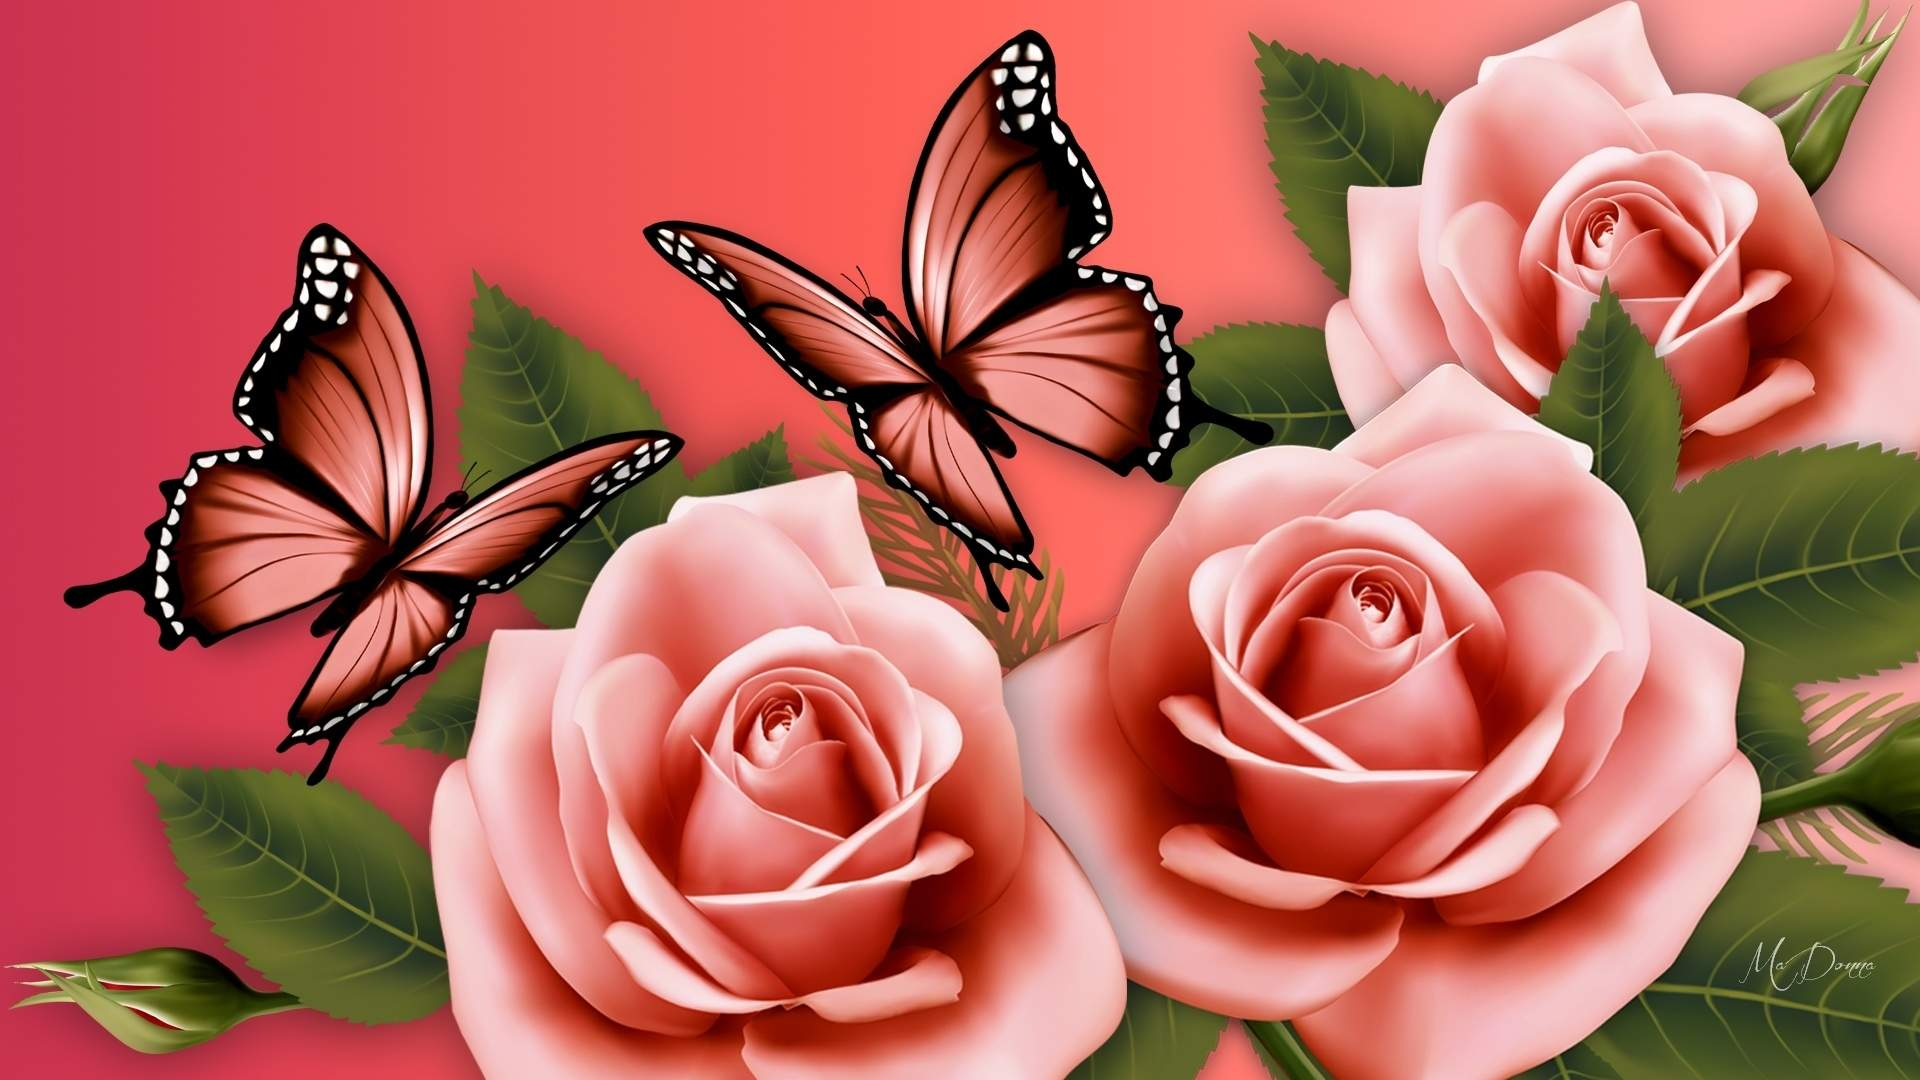 flowers with butterfly wallpaper hd flower and butterfly wallpaper ...